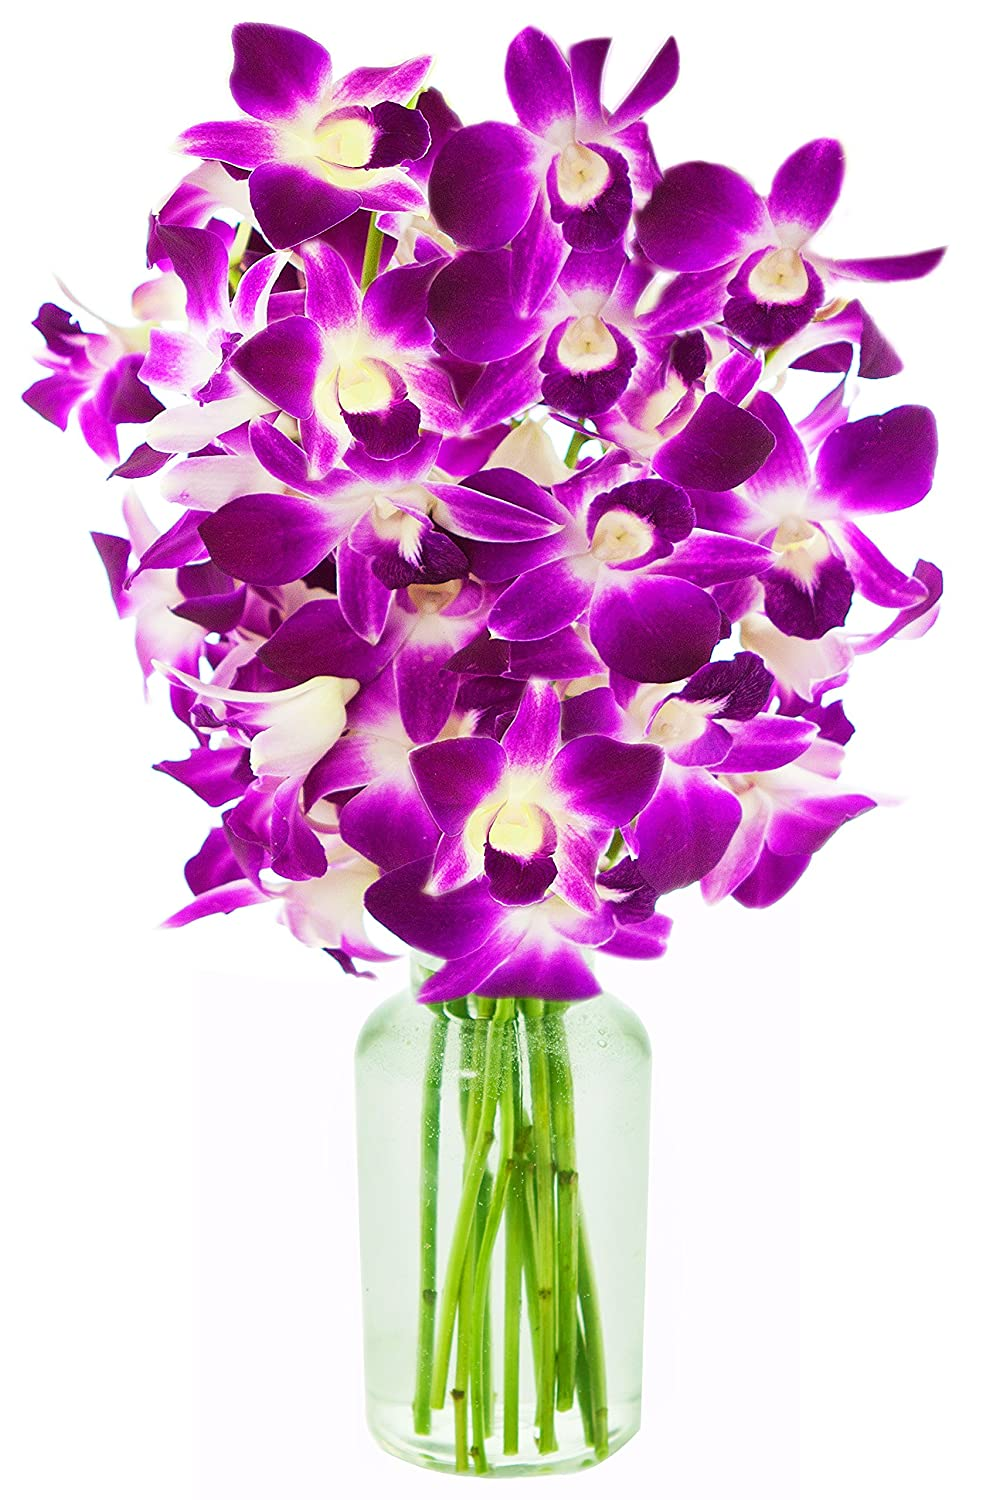 Amazon kabloom the ultimate purple orchid bouquet 10 exotic amazon kabloom the ultimate purple orchid bouquet 10 exotic purple dendrobium orchids from thailand with vase grocery gourmet food izmirmasajfo Images